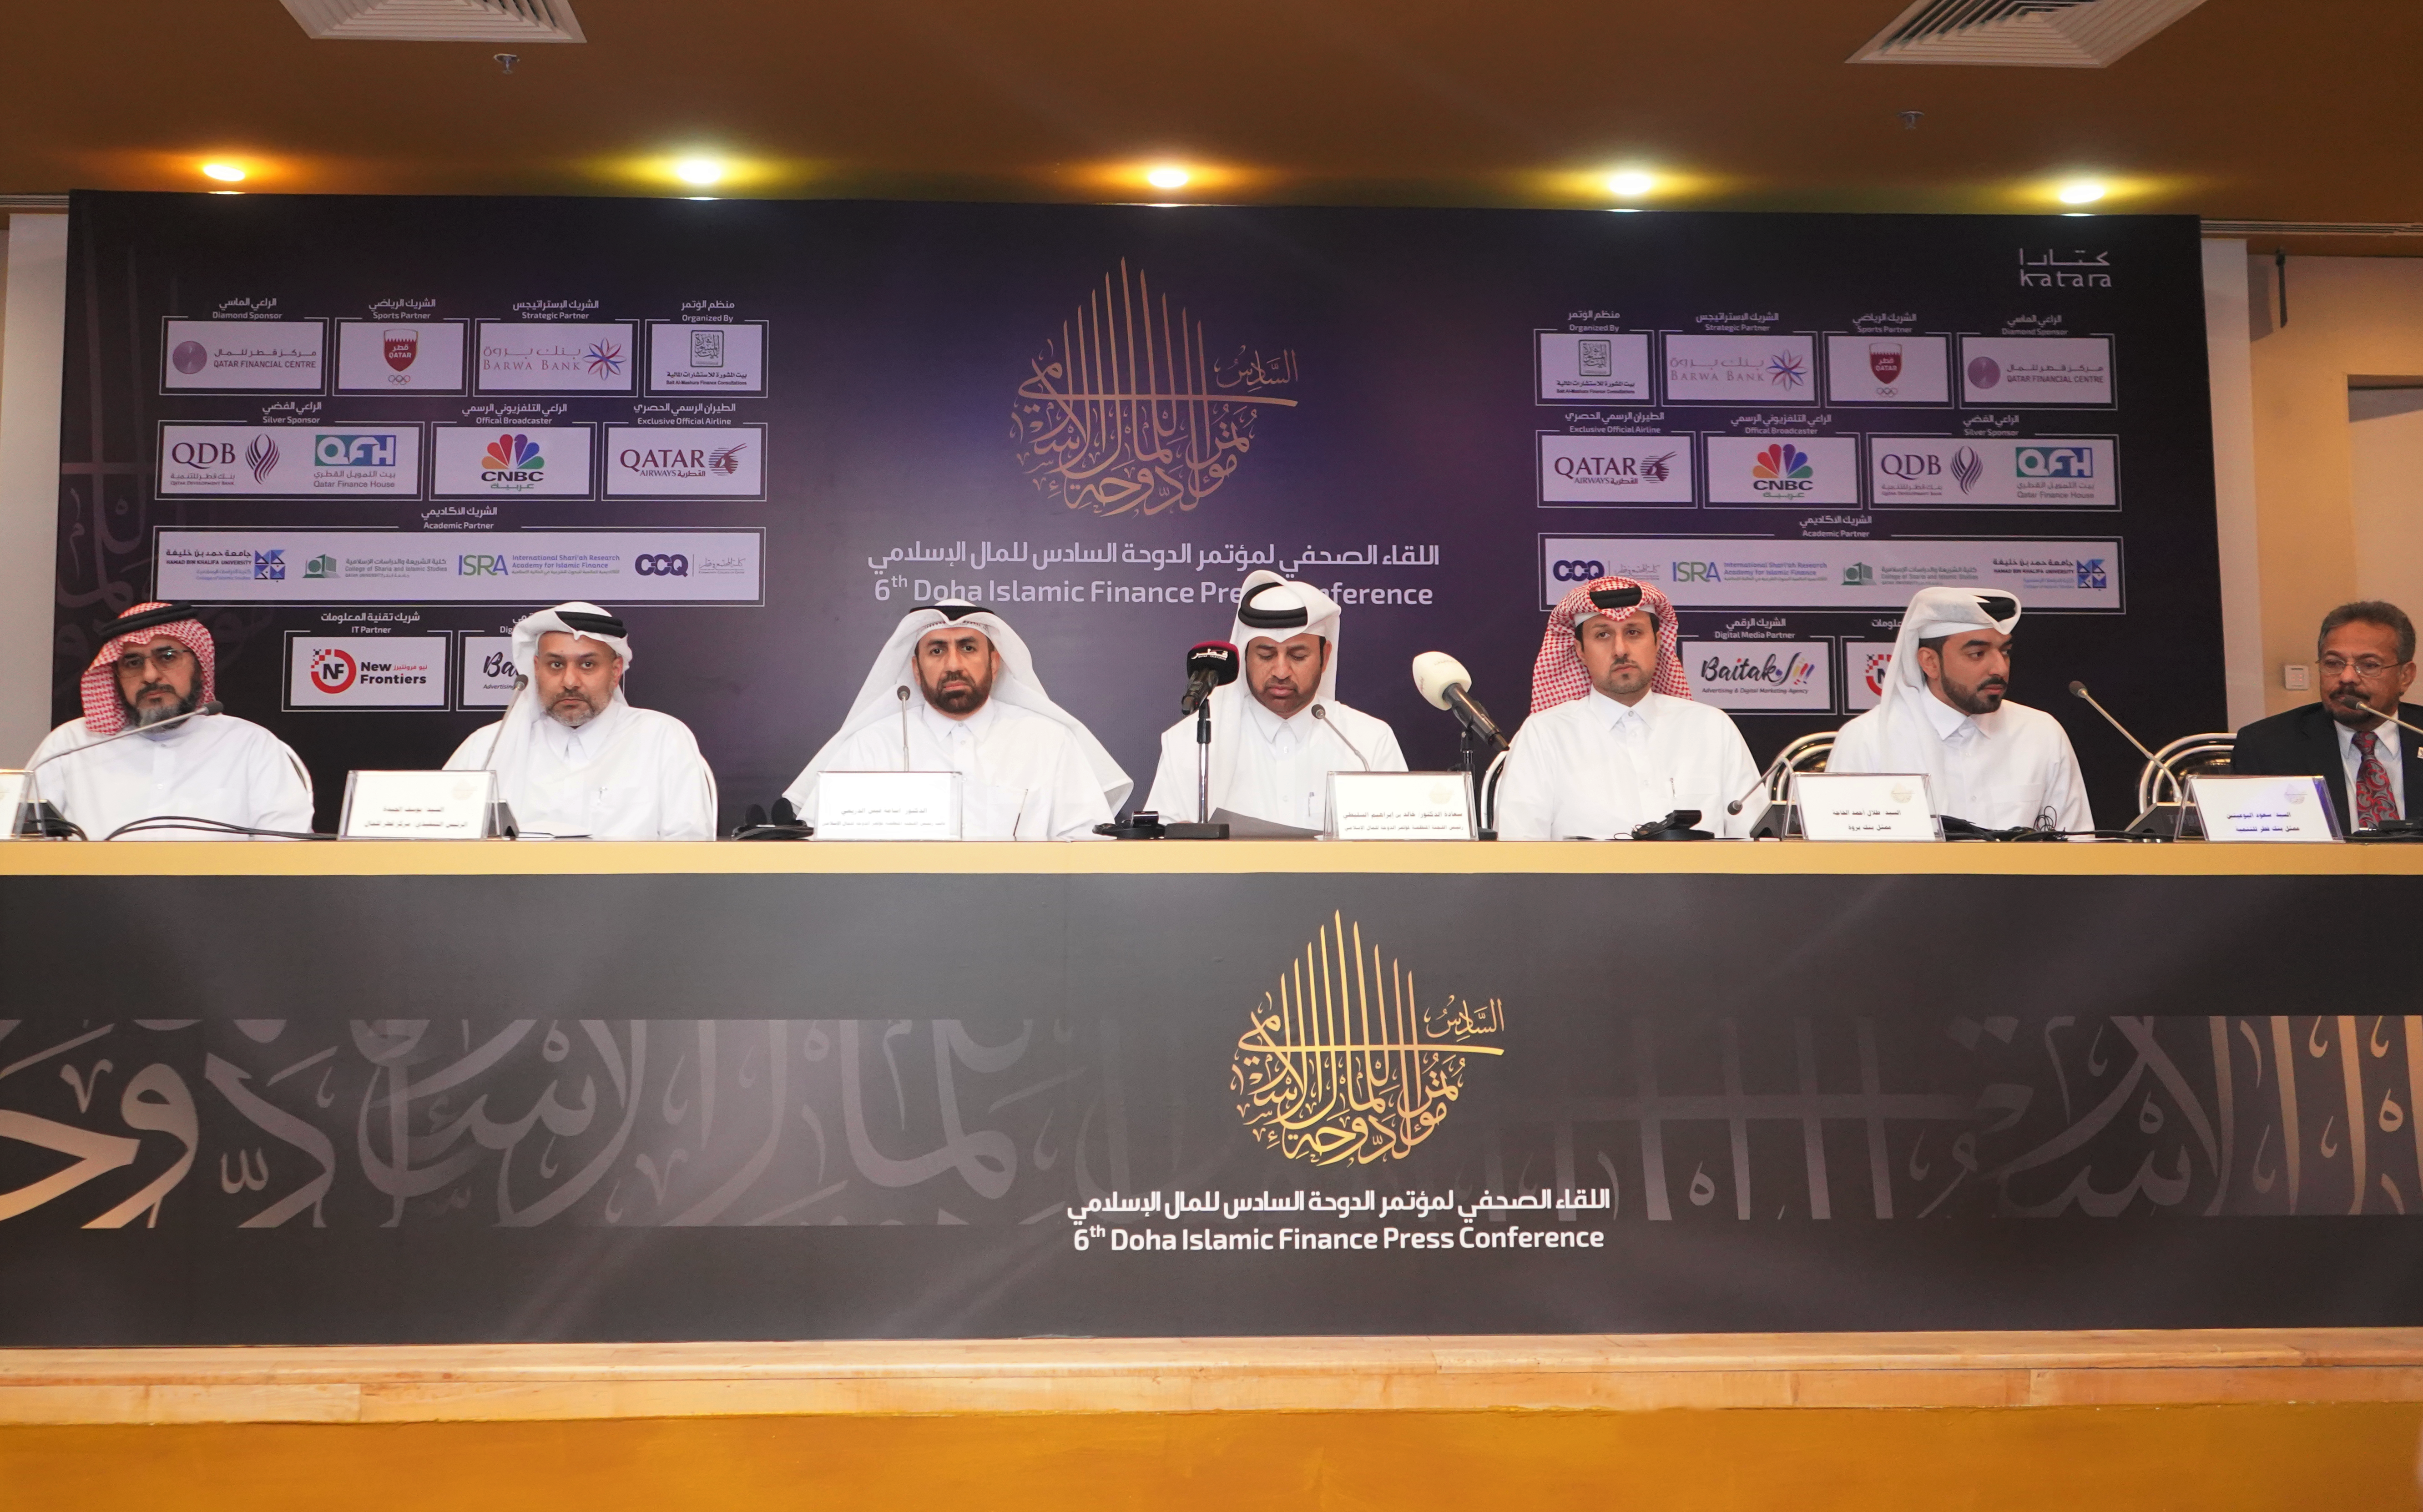 The Press Conference of 6th Doha Islamic Finance Conference